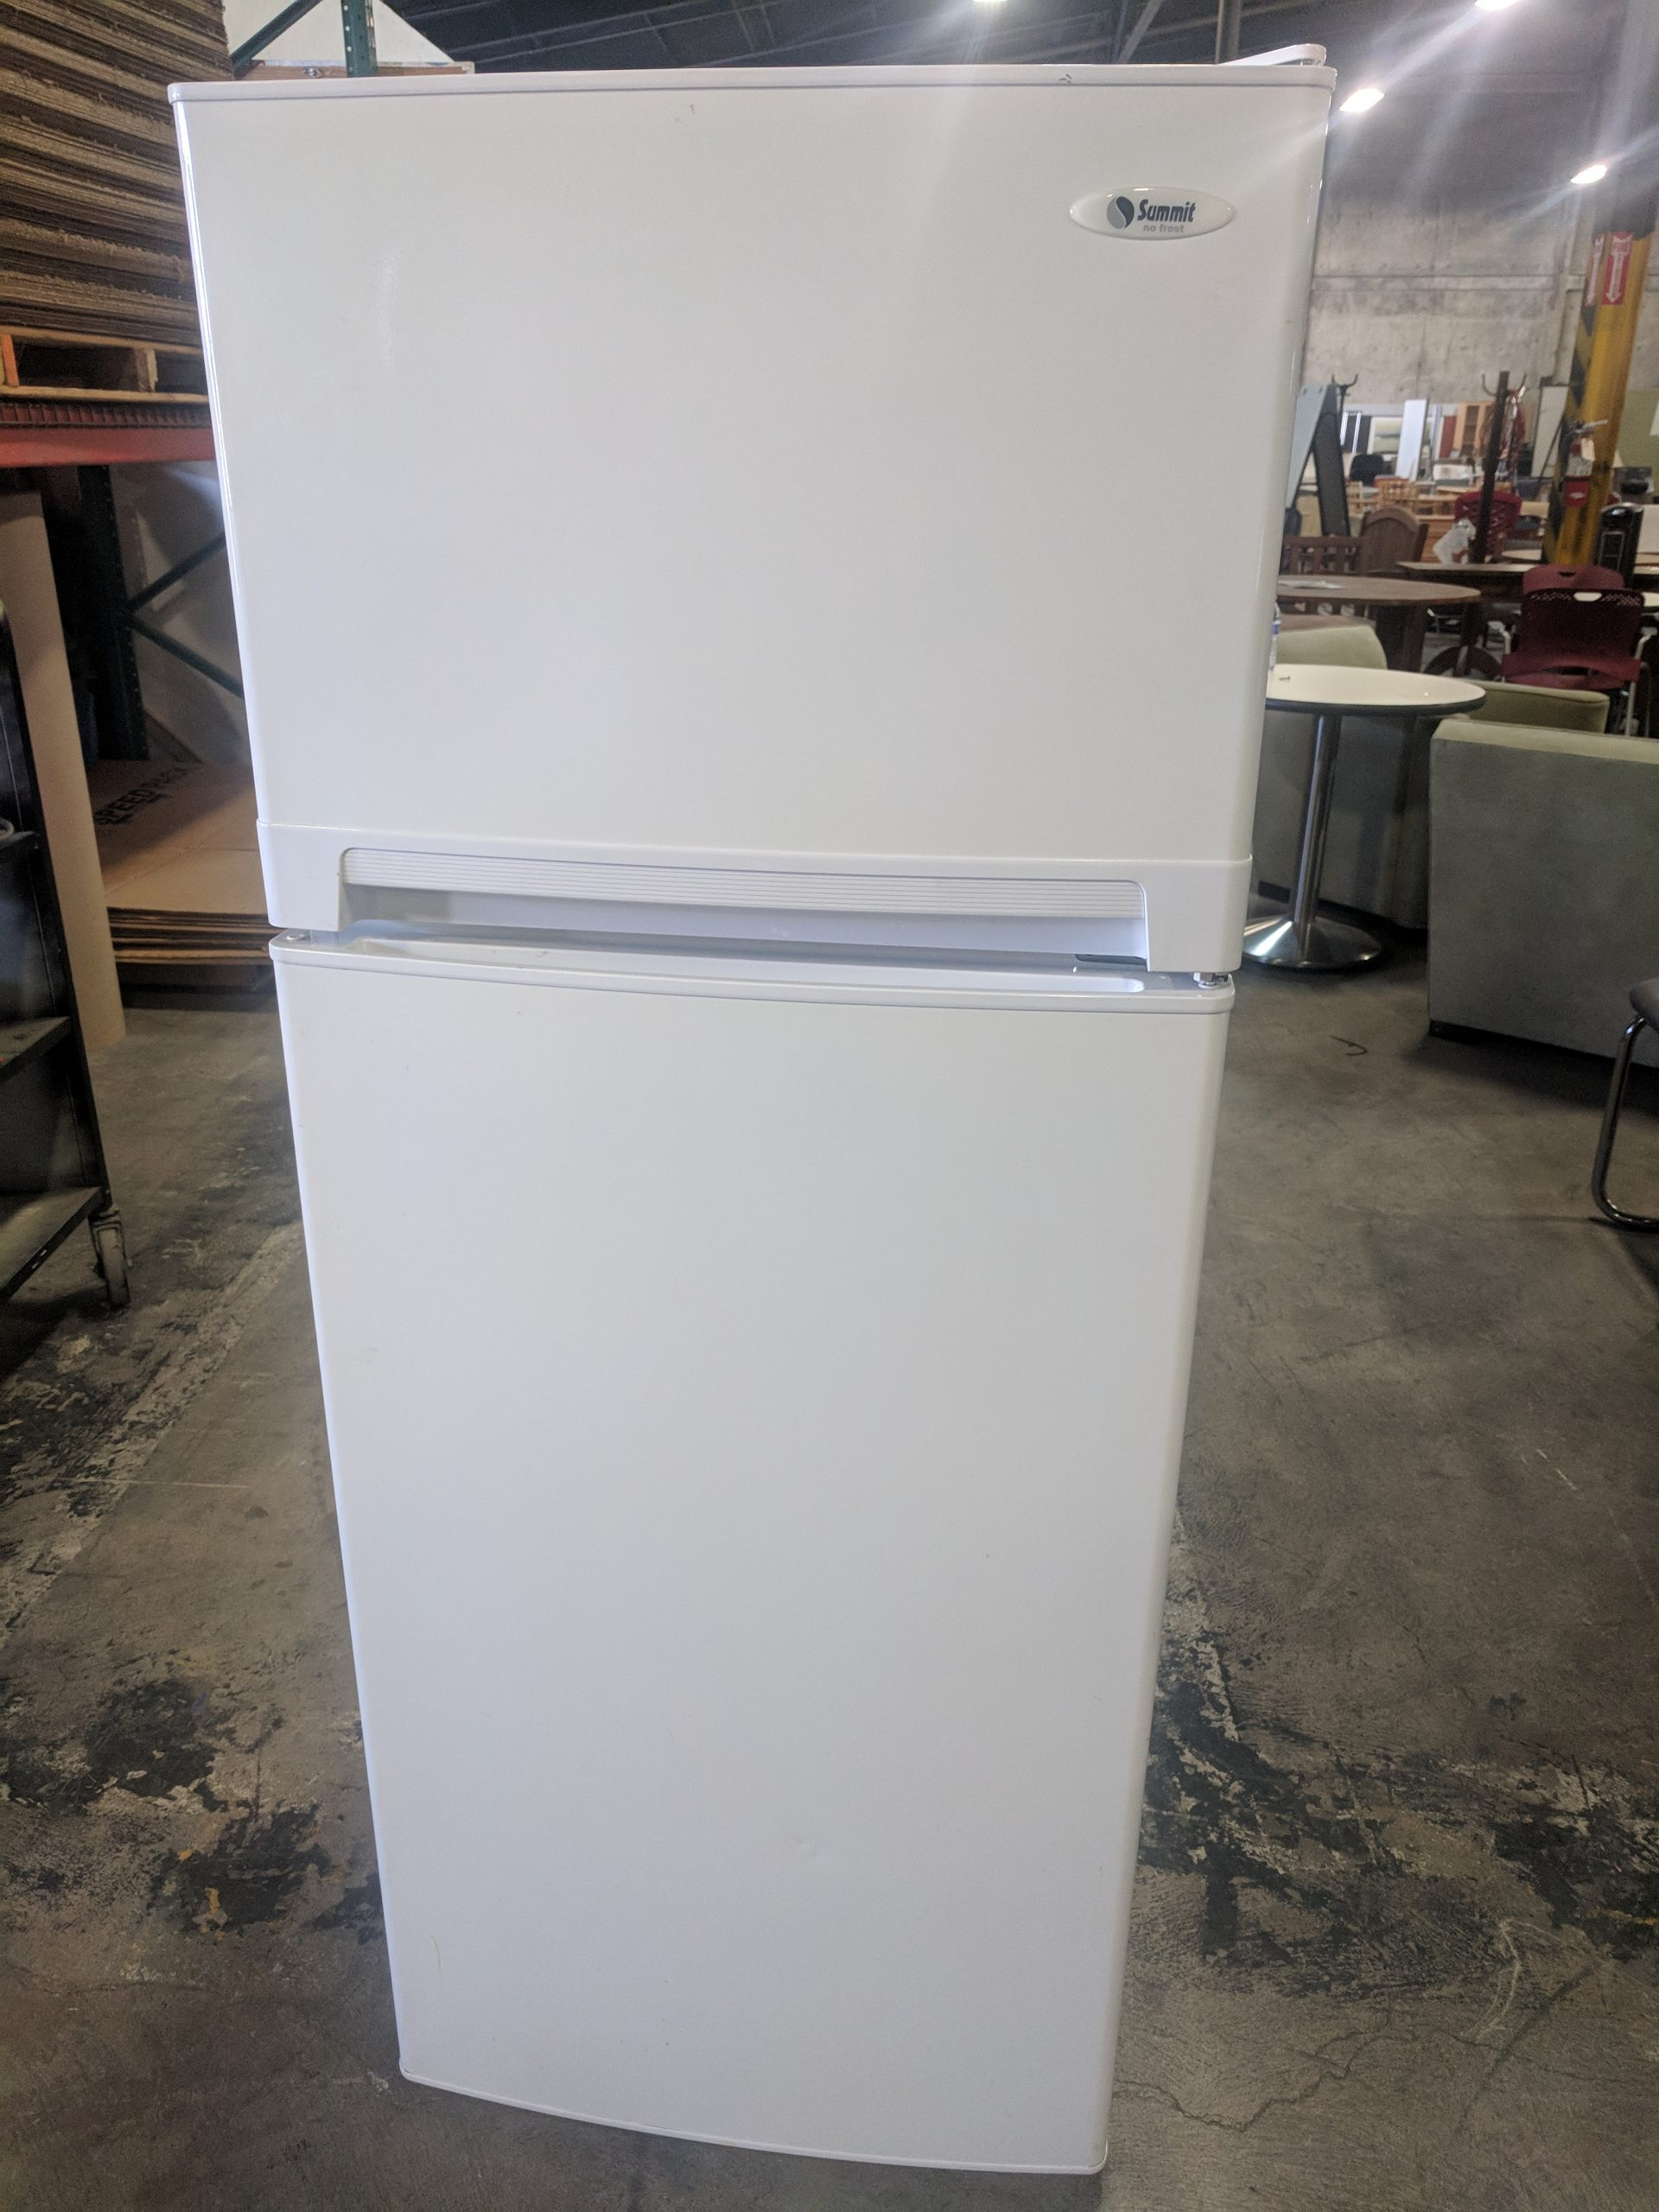 SUMMIT TOP FREEZER REFRIGERATOR, WHITE FINISH REFRIGERATOR, 24Wx29Dx59H